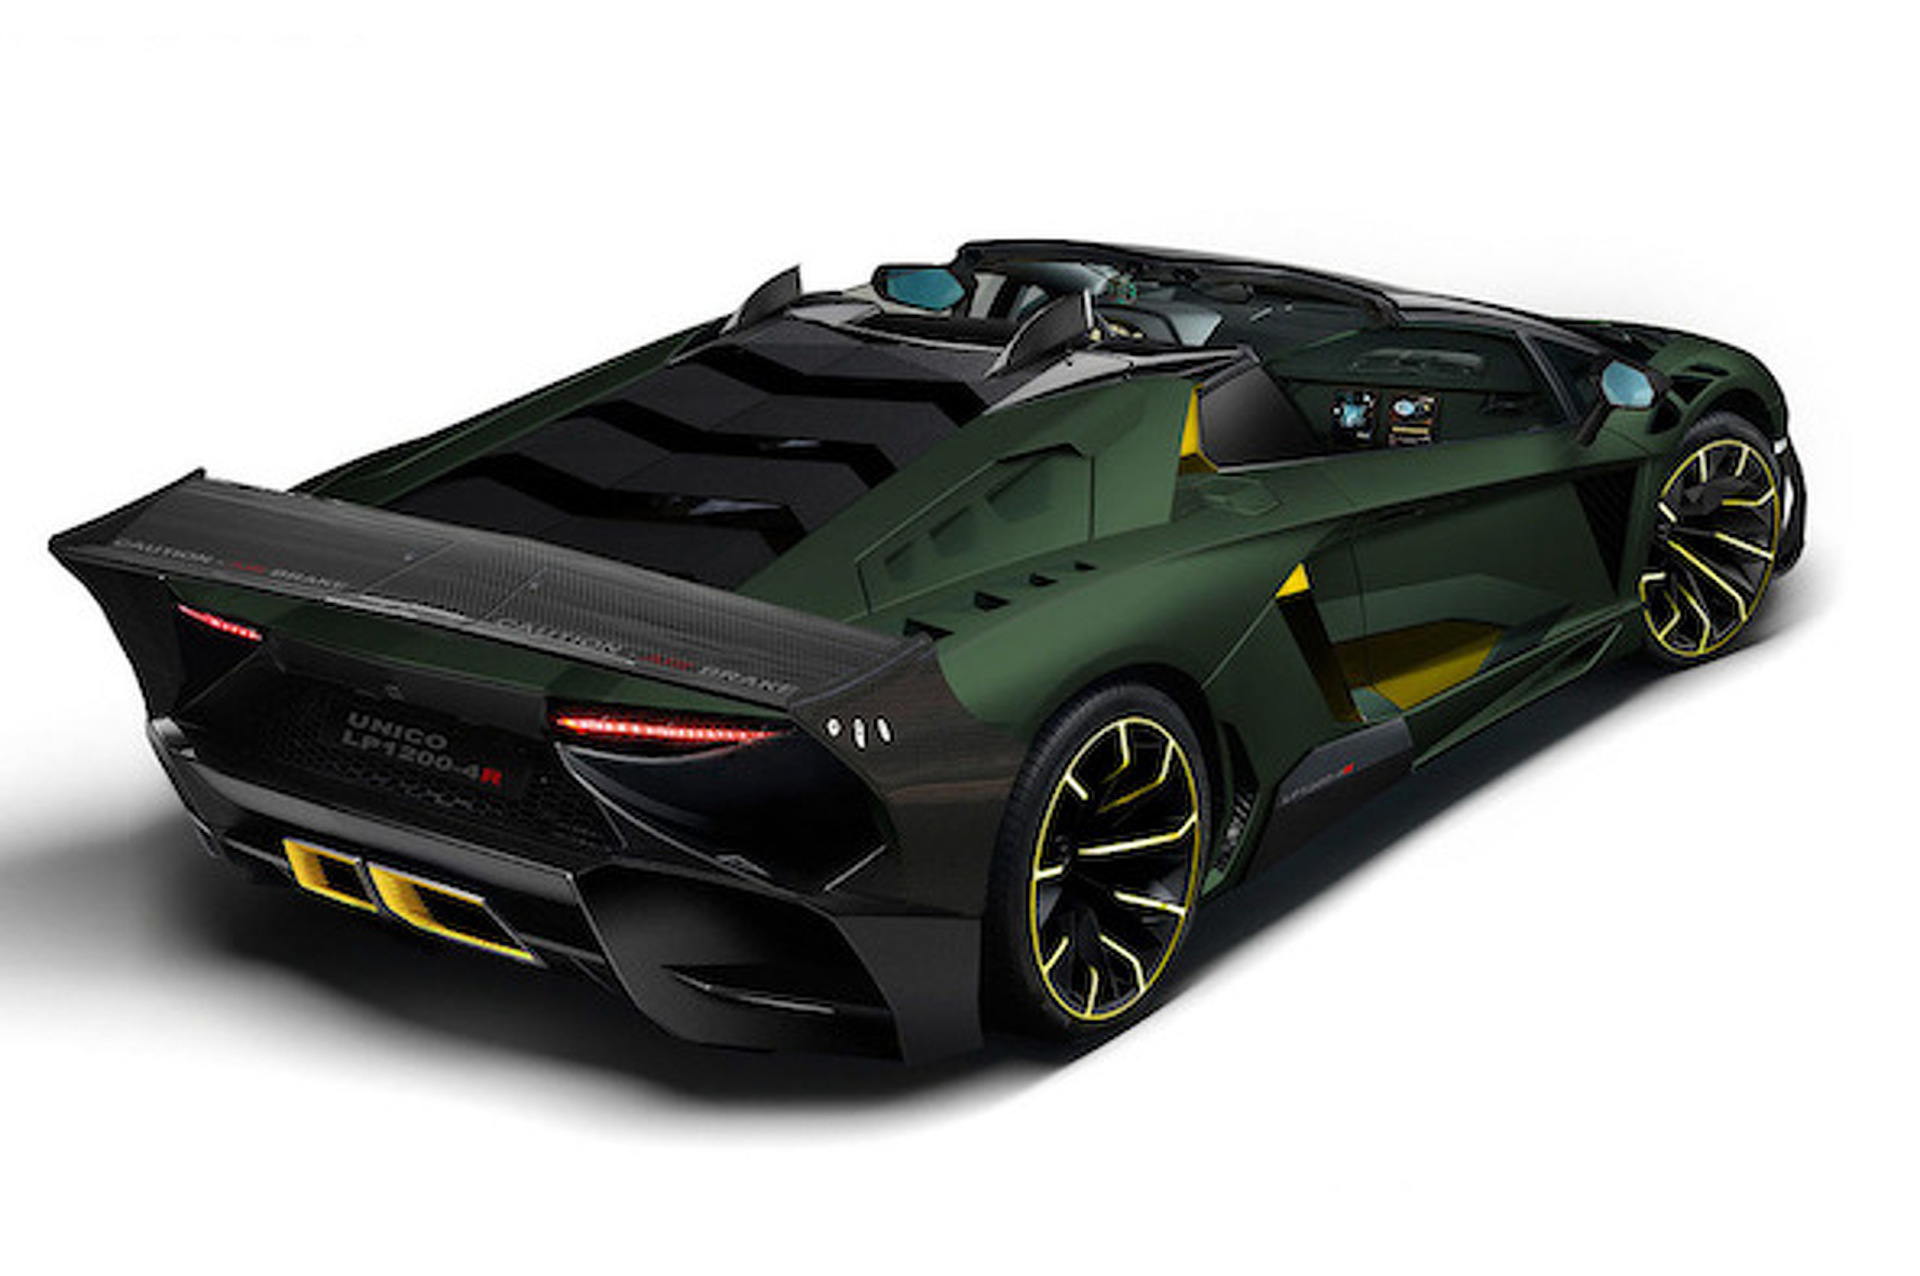 DMC is Building a 2,000HP, $2.5M Custom Aventador